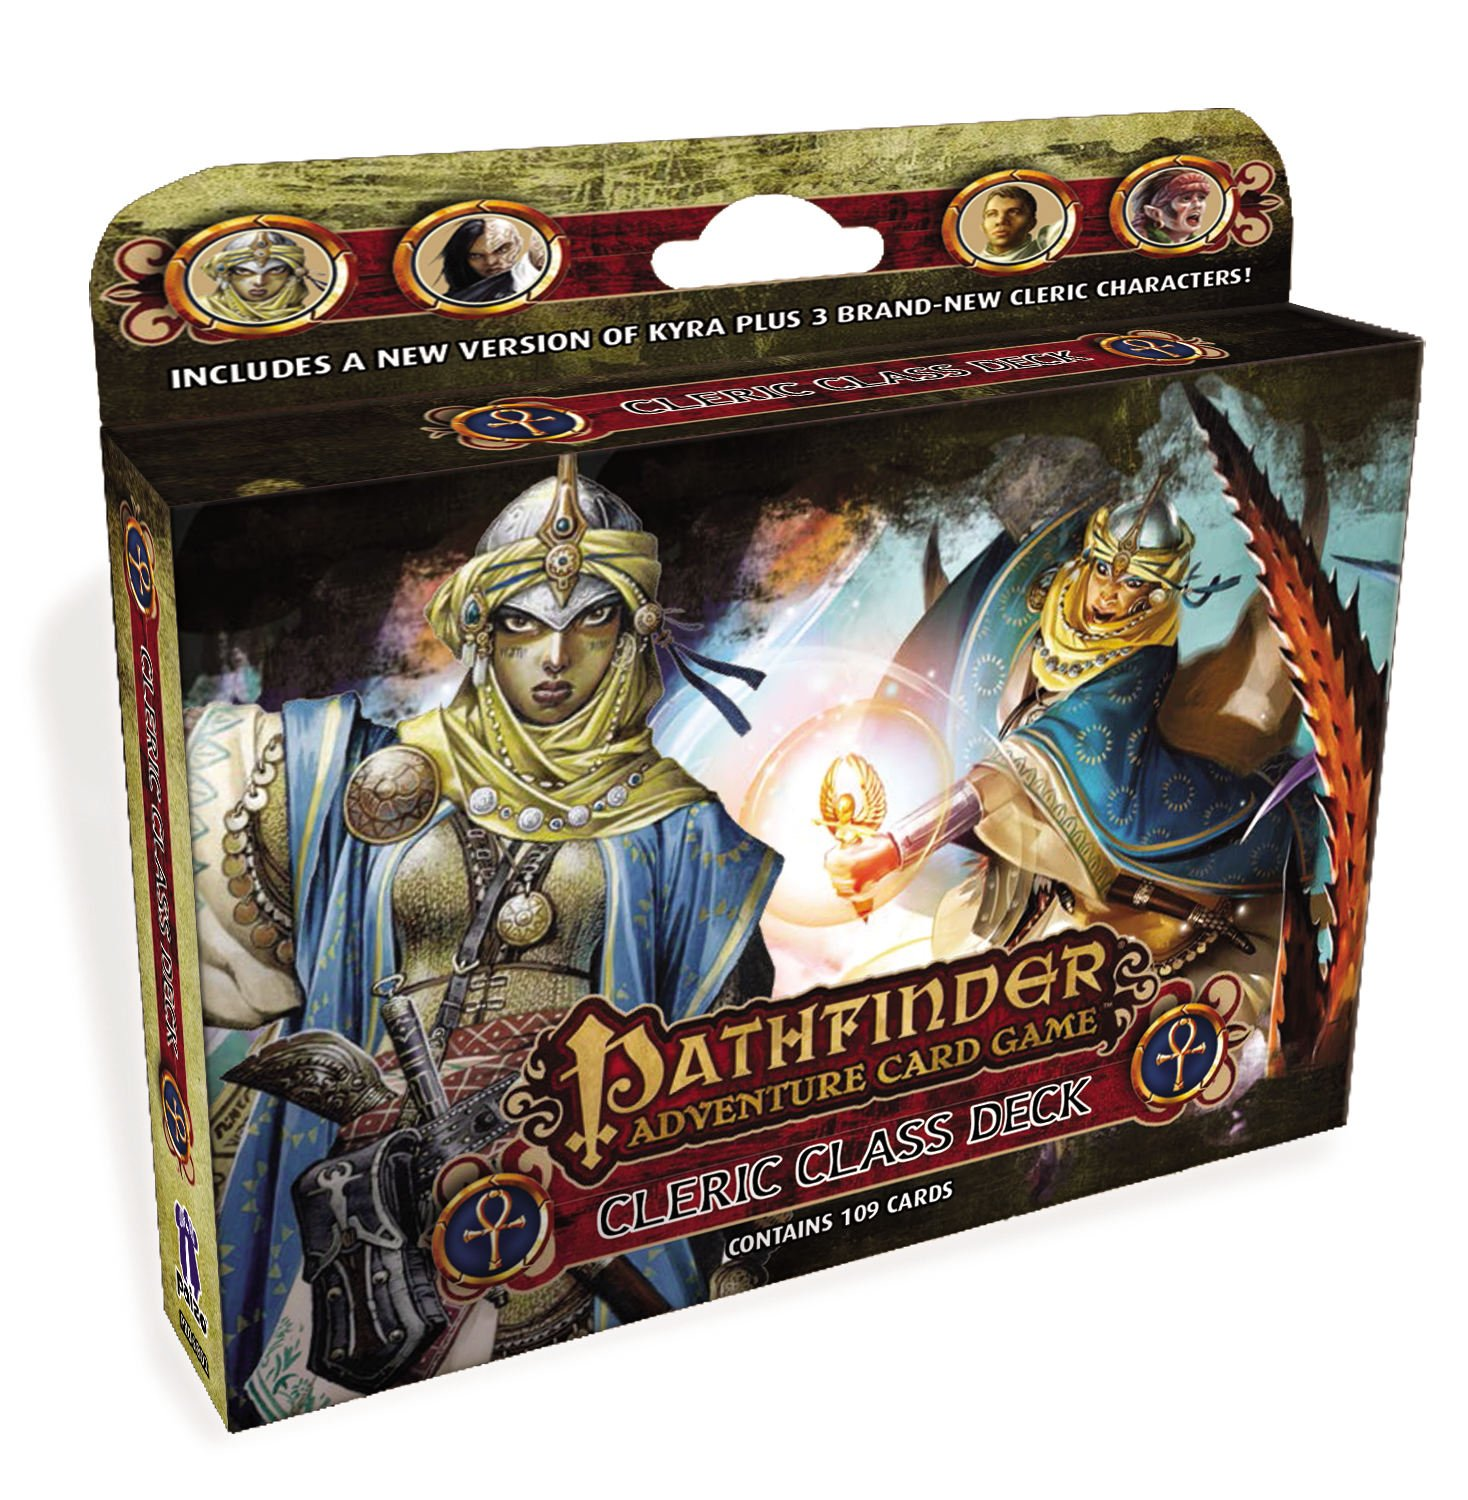 Pathfinder Adventure Card Game: Cleric Class Deck